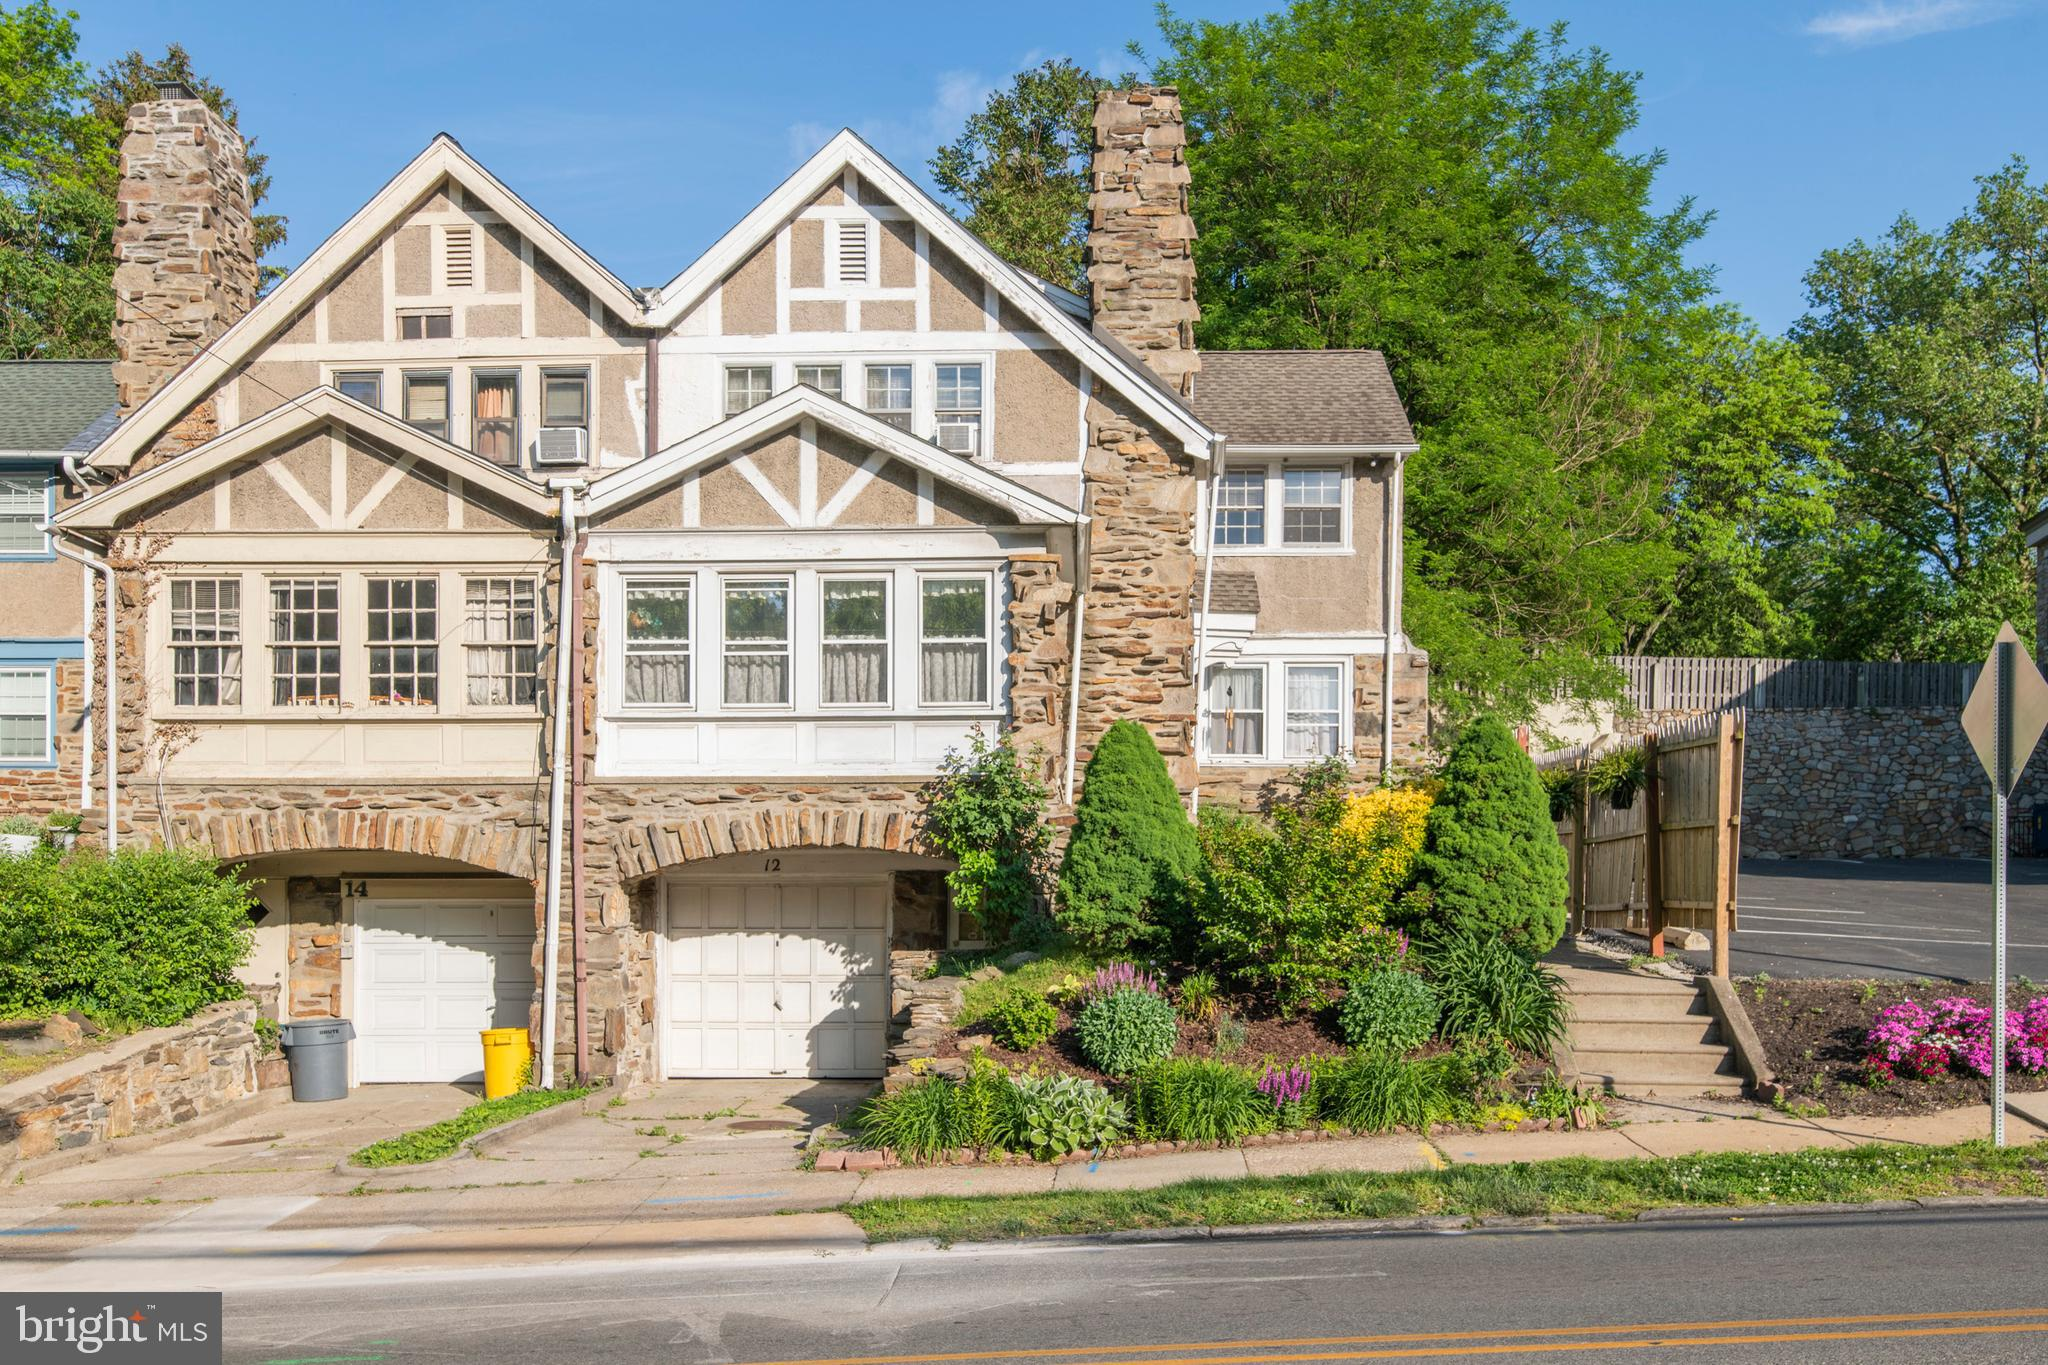 Beautiful Stone Twin In Lower Merion at a price you can't refuse! Enter into a light-filled sunroom that can be used as your home office or just a sitting area to enjoy all of the natural light shining through! Large living room with a stone wood-burning fireplace which leads into a nice sized formal dining room. The 3 nice size bedrooms with ample closet space, hall bath with an additional 1/2 bath in one of the bedrooms. Full unfinished basement, 1 Car garage with additional driveway parking, fenced-in rear yard. All of this in award-winning Lower Merion School District.....so close to all transportation, center city, and Manayunk! Priced to sell!